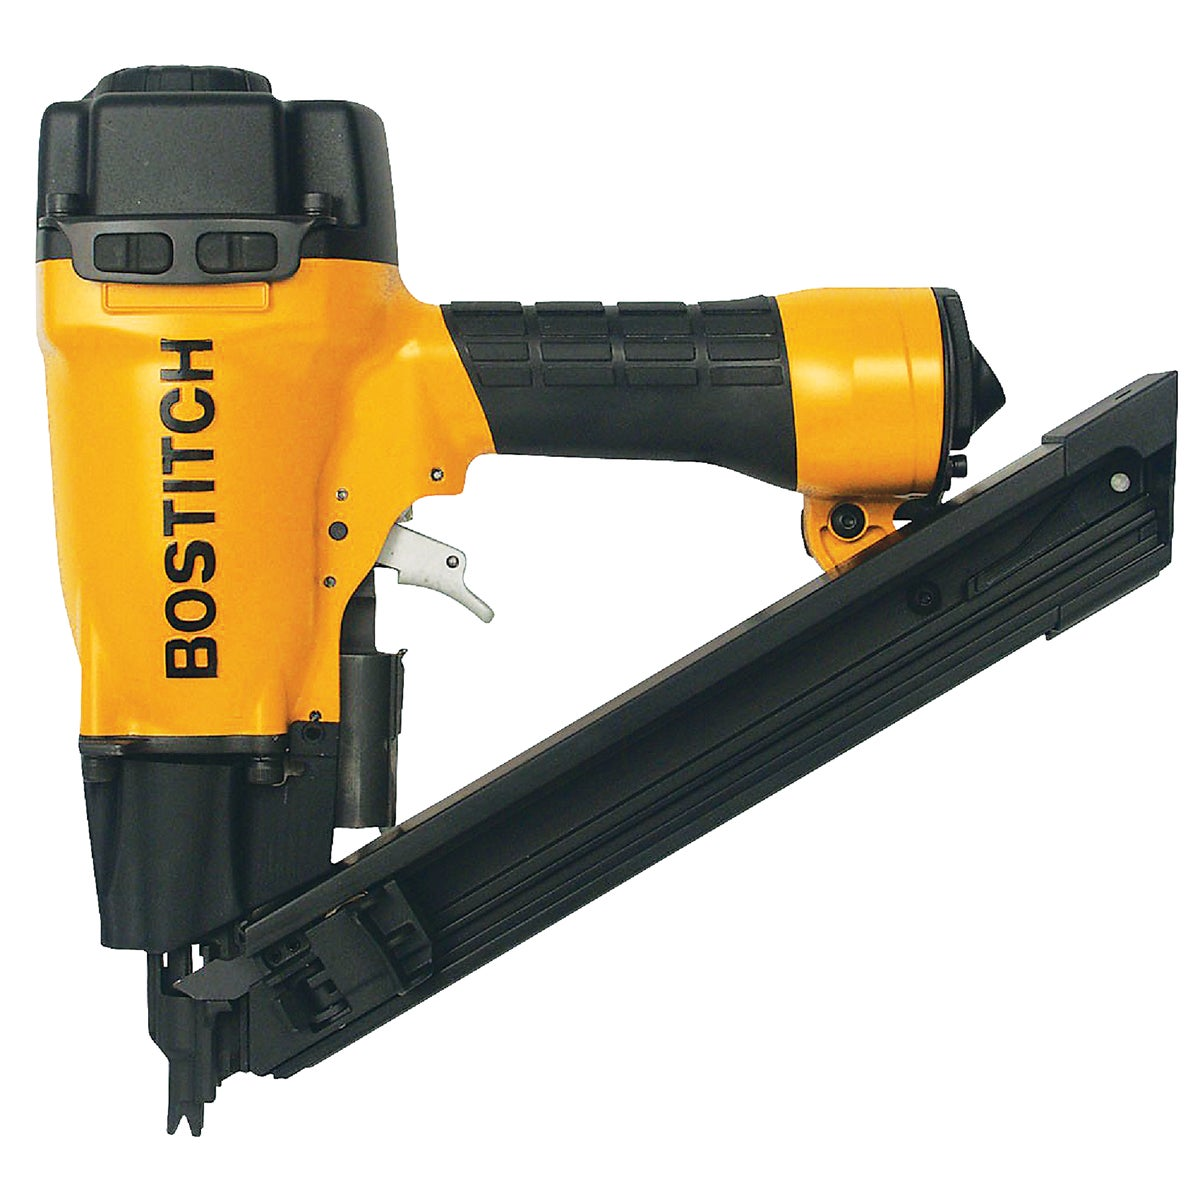 METAL CONNECTOR NAILER - MCN150 by Stanley Bostitch